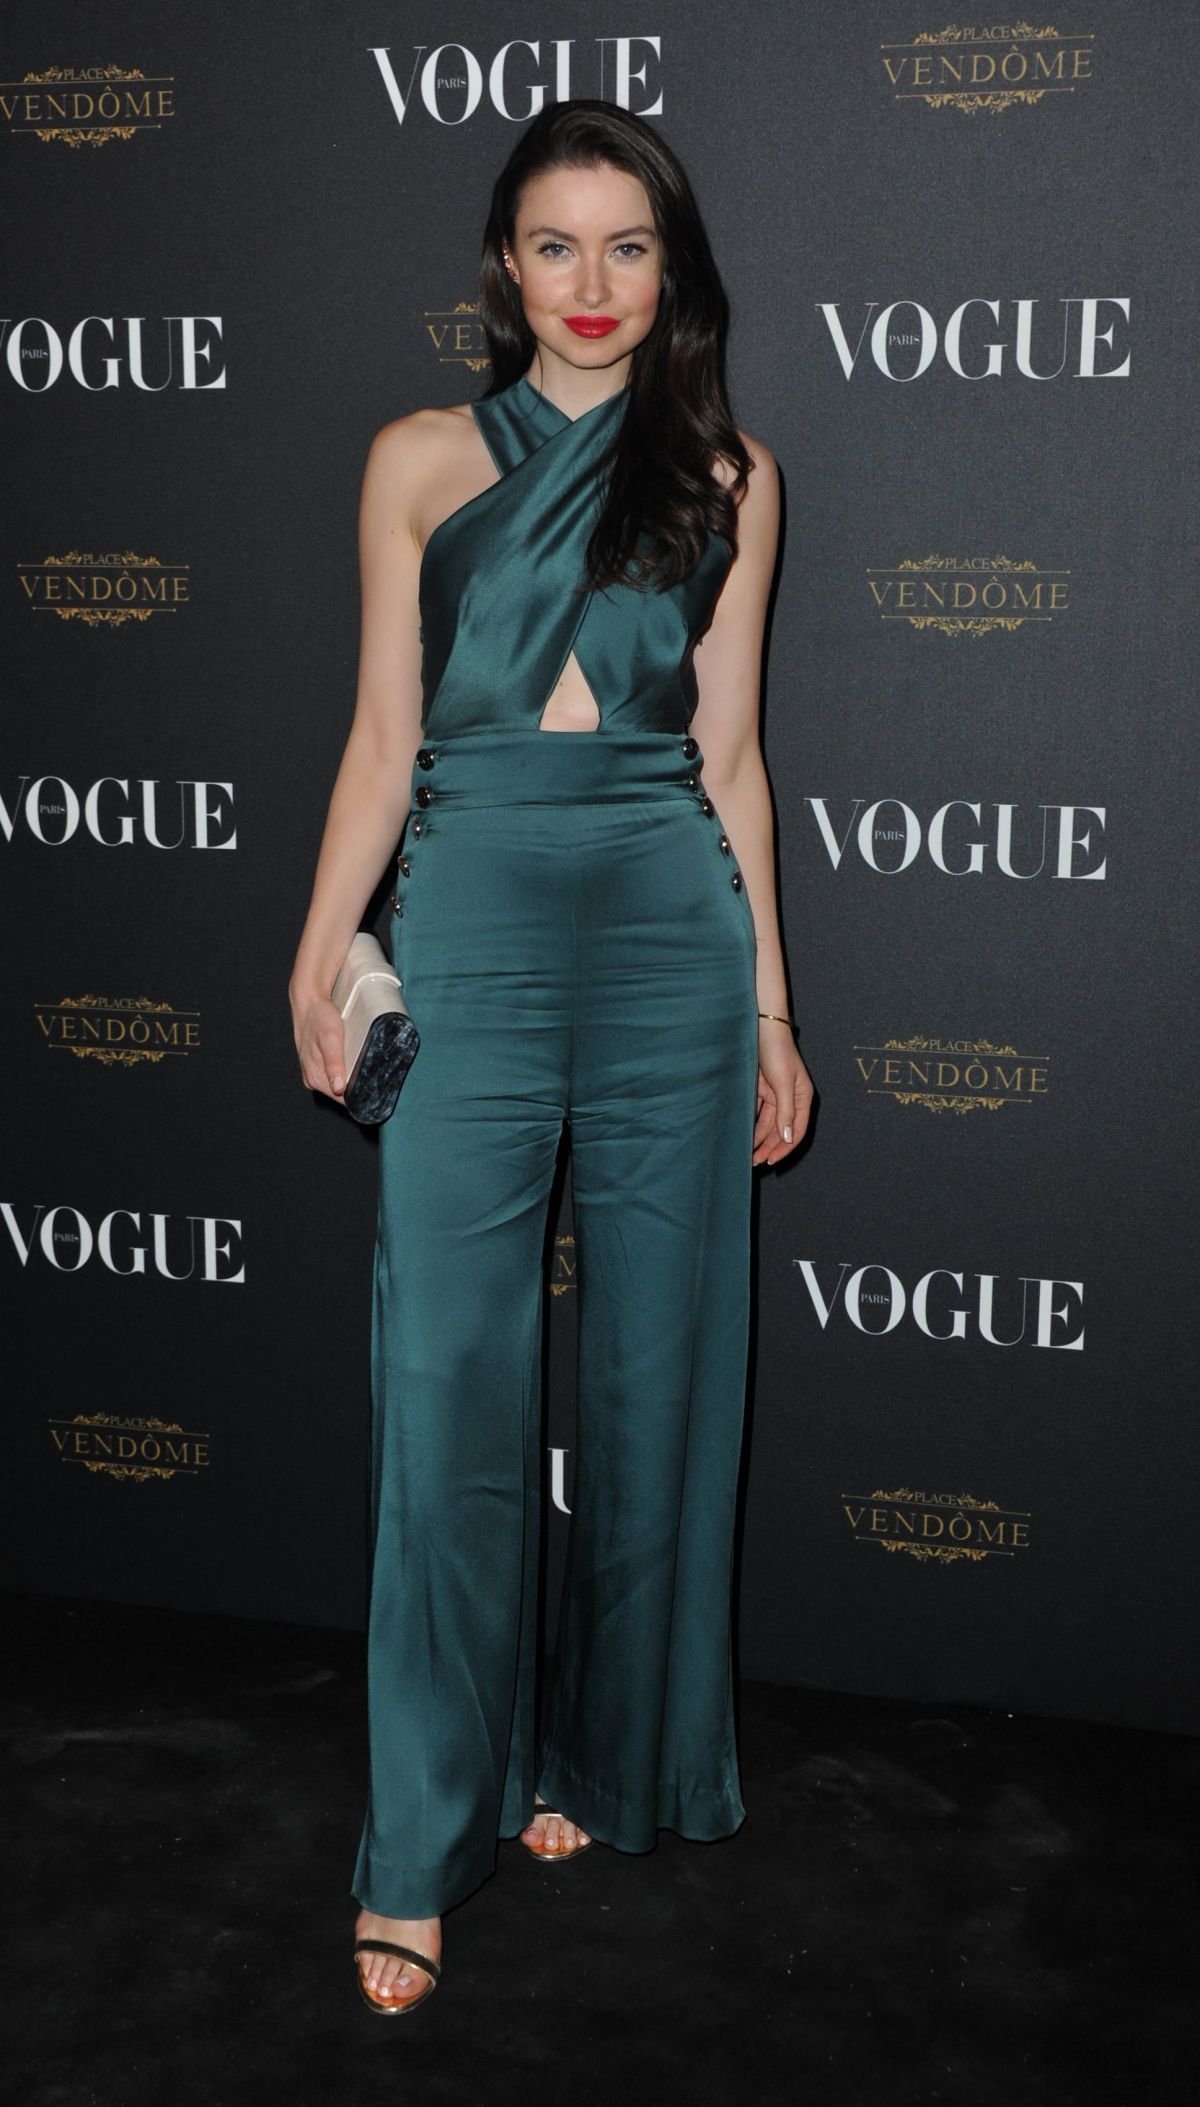 EMMA MILLER at Vogue's 95th Anniversary Party in Paris 10/03/2015